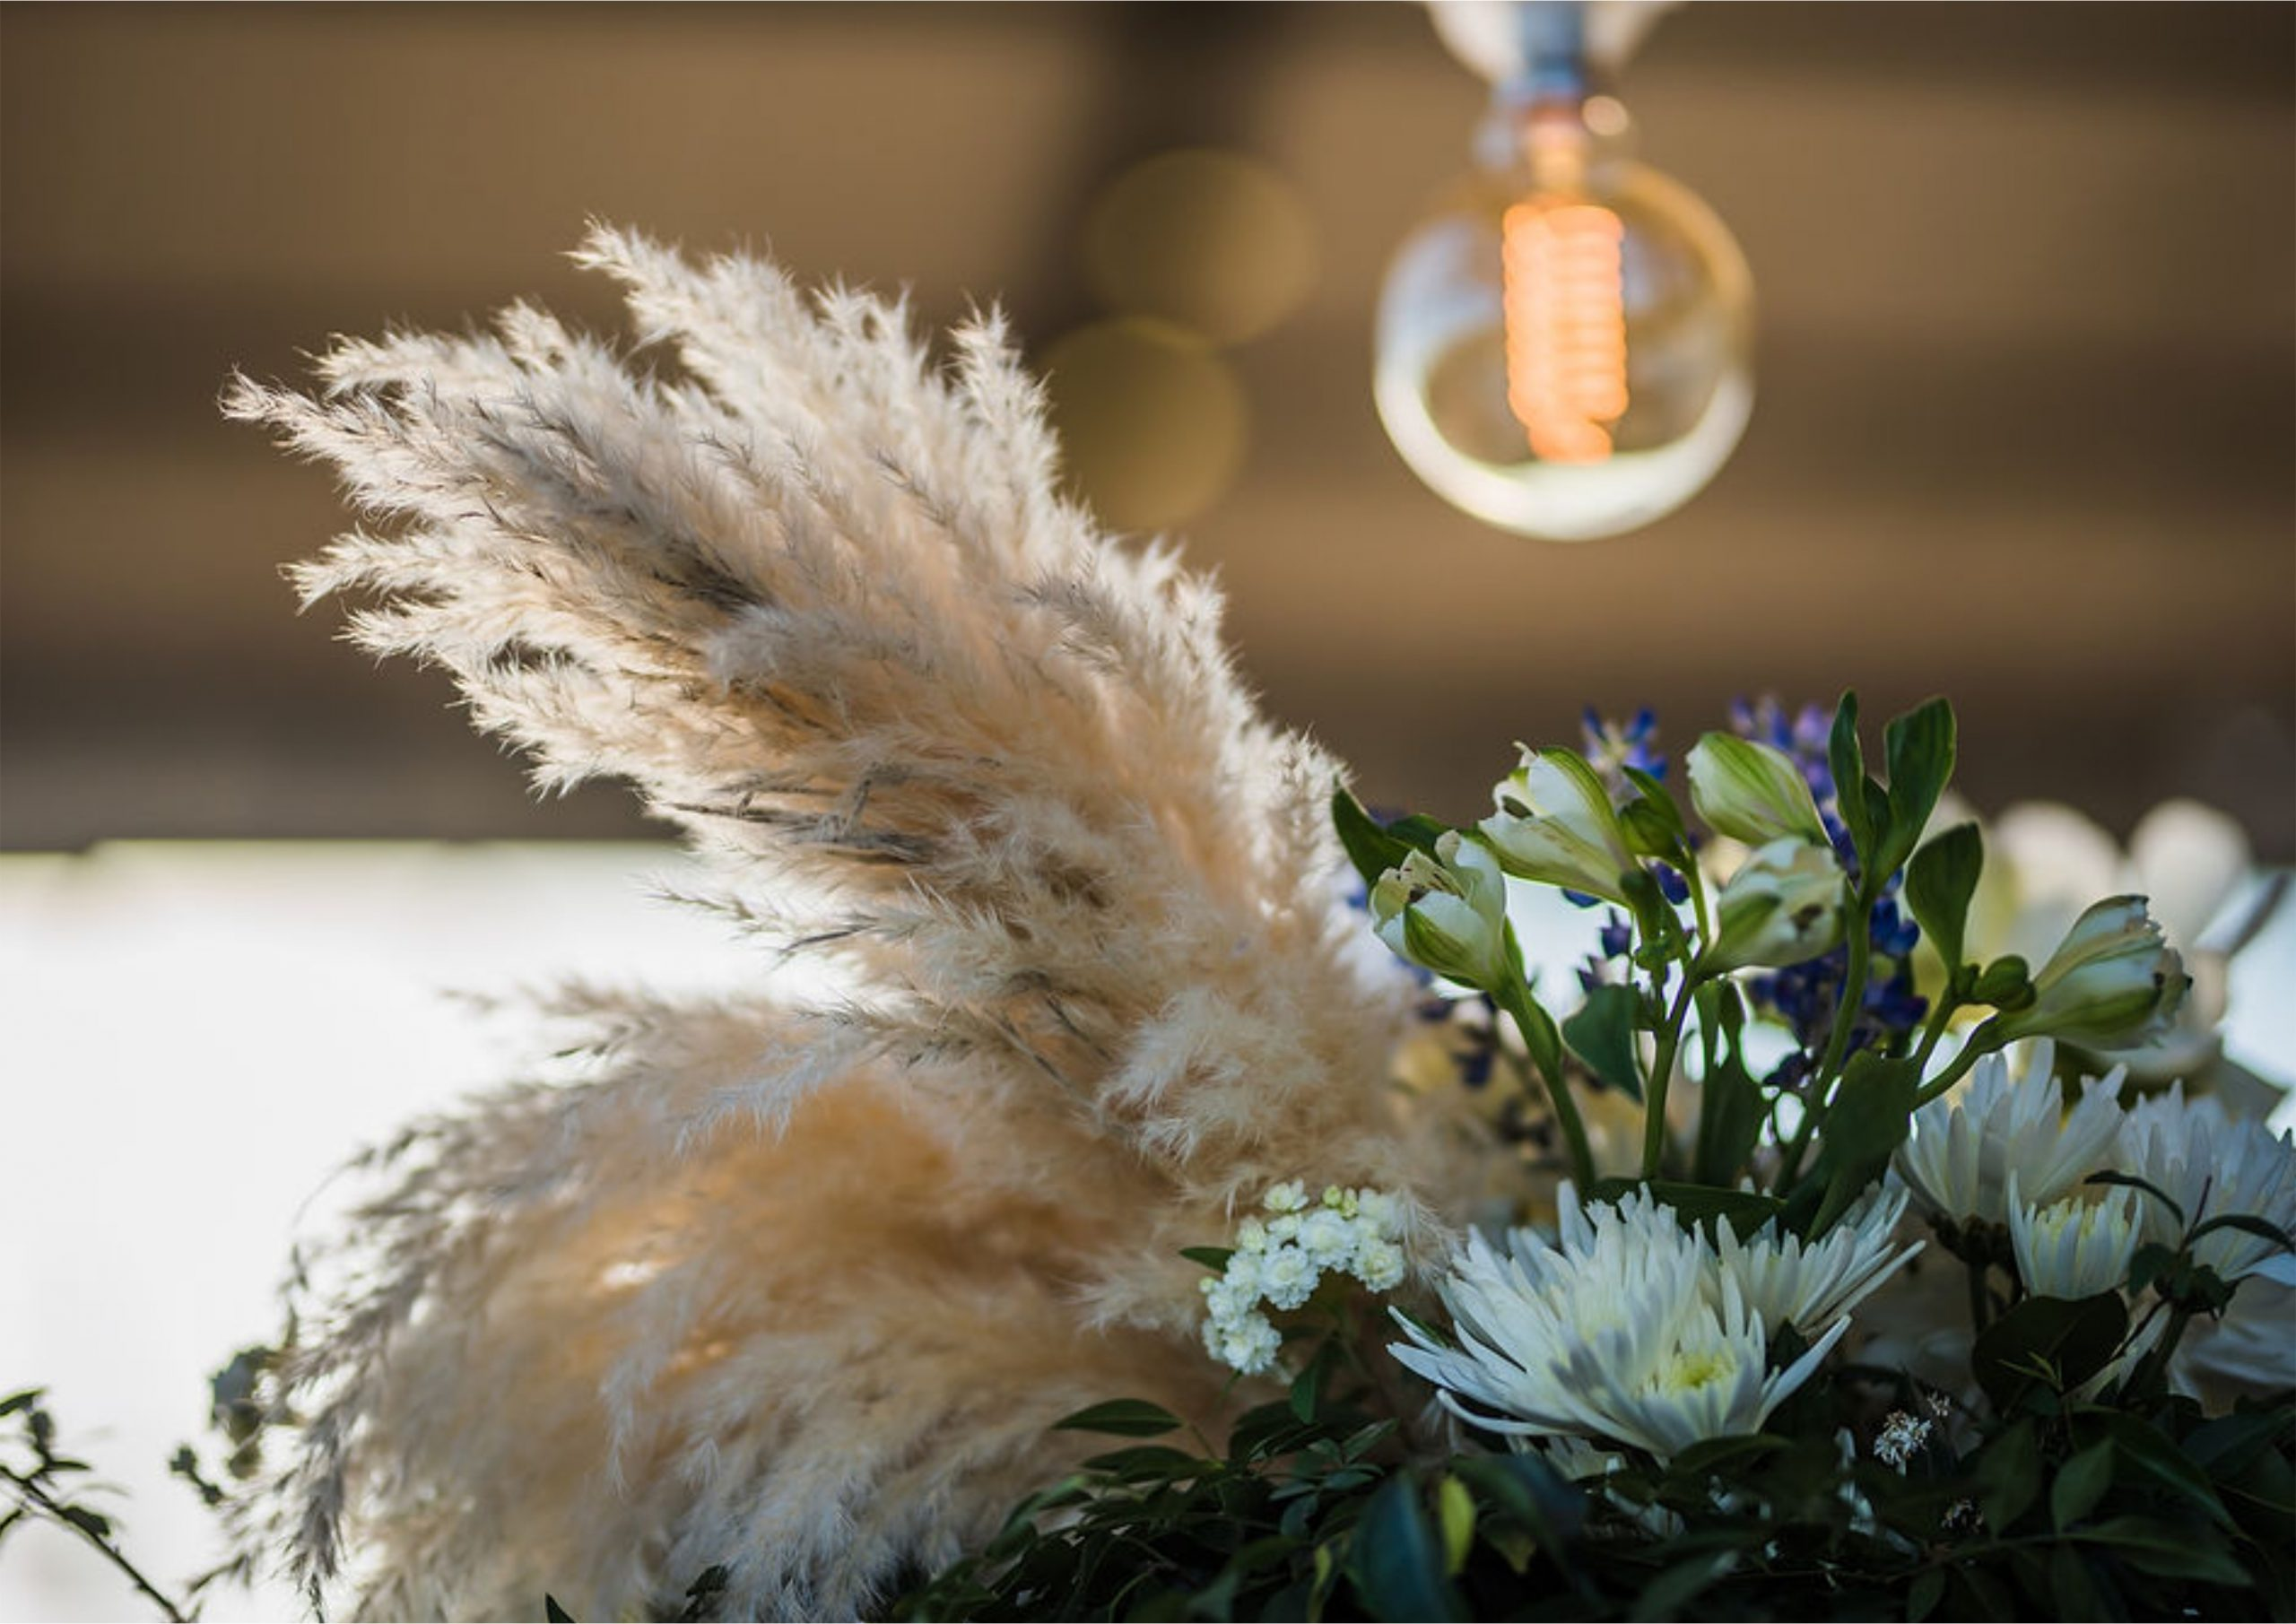 Bruidsgids Wedding Guide My Pretty Vintage Romantic Vineyard Setting Pampas Grass Orchids Wedding Flowers Decor Events Photgraphy by Gustav Klotz